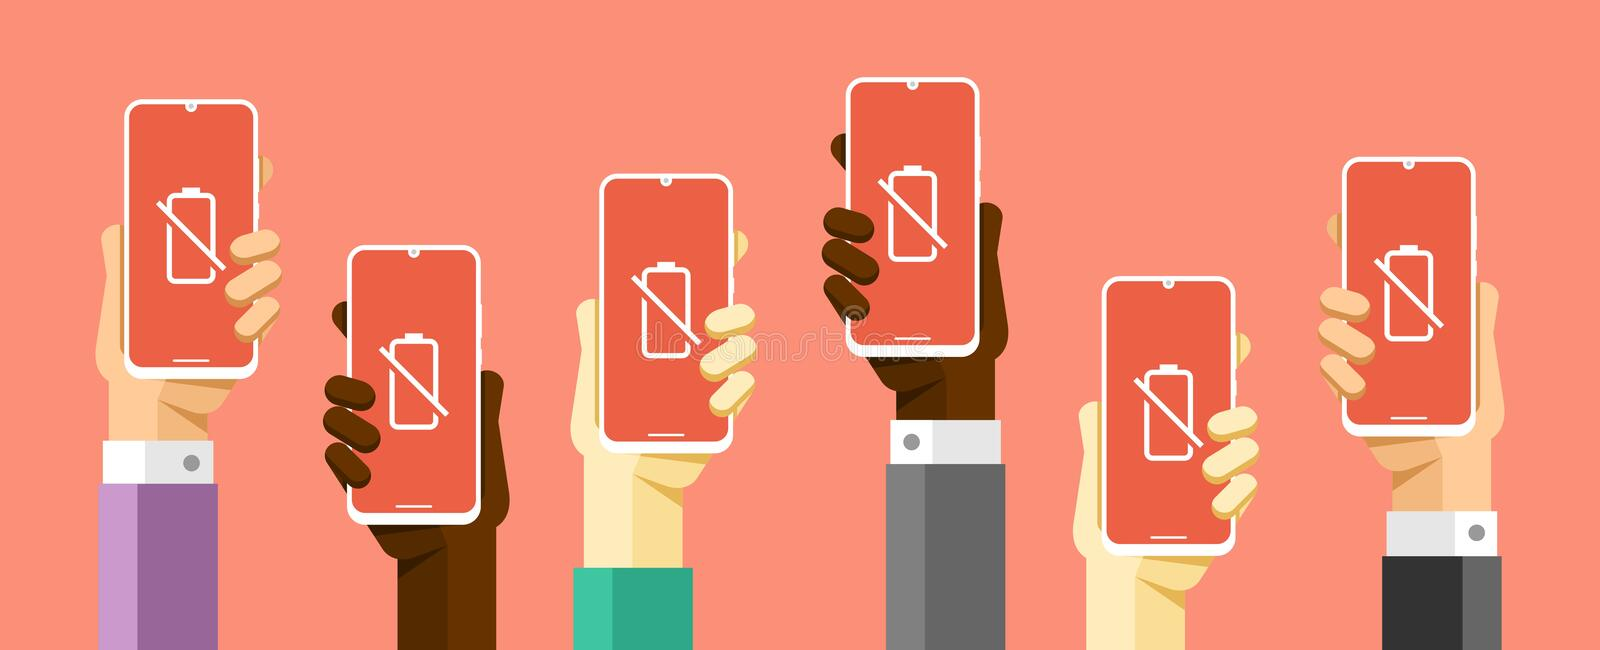 Smartphone mockup in human hand. Low battery power. Charging. Vector flat colorful technology illustration vector illustration